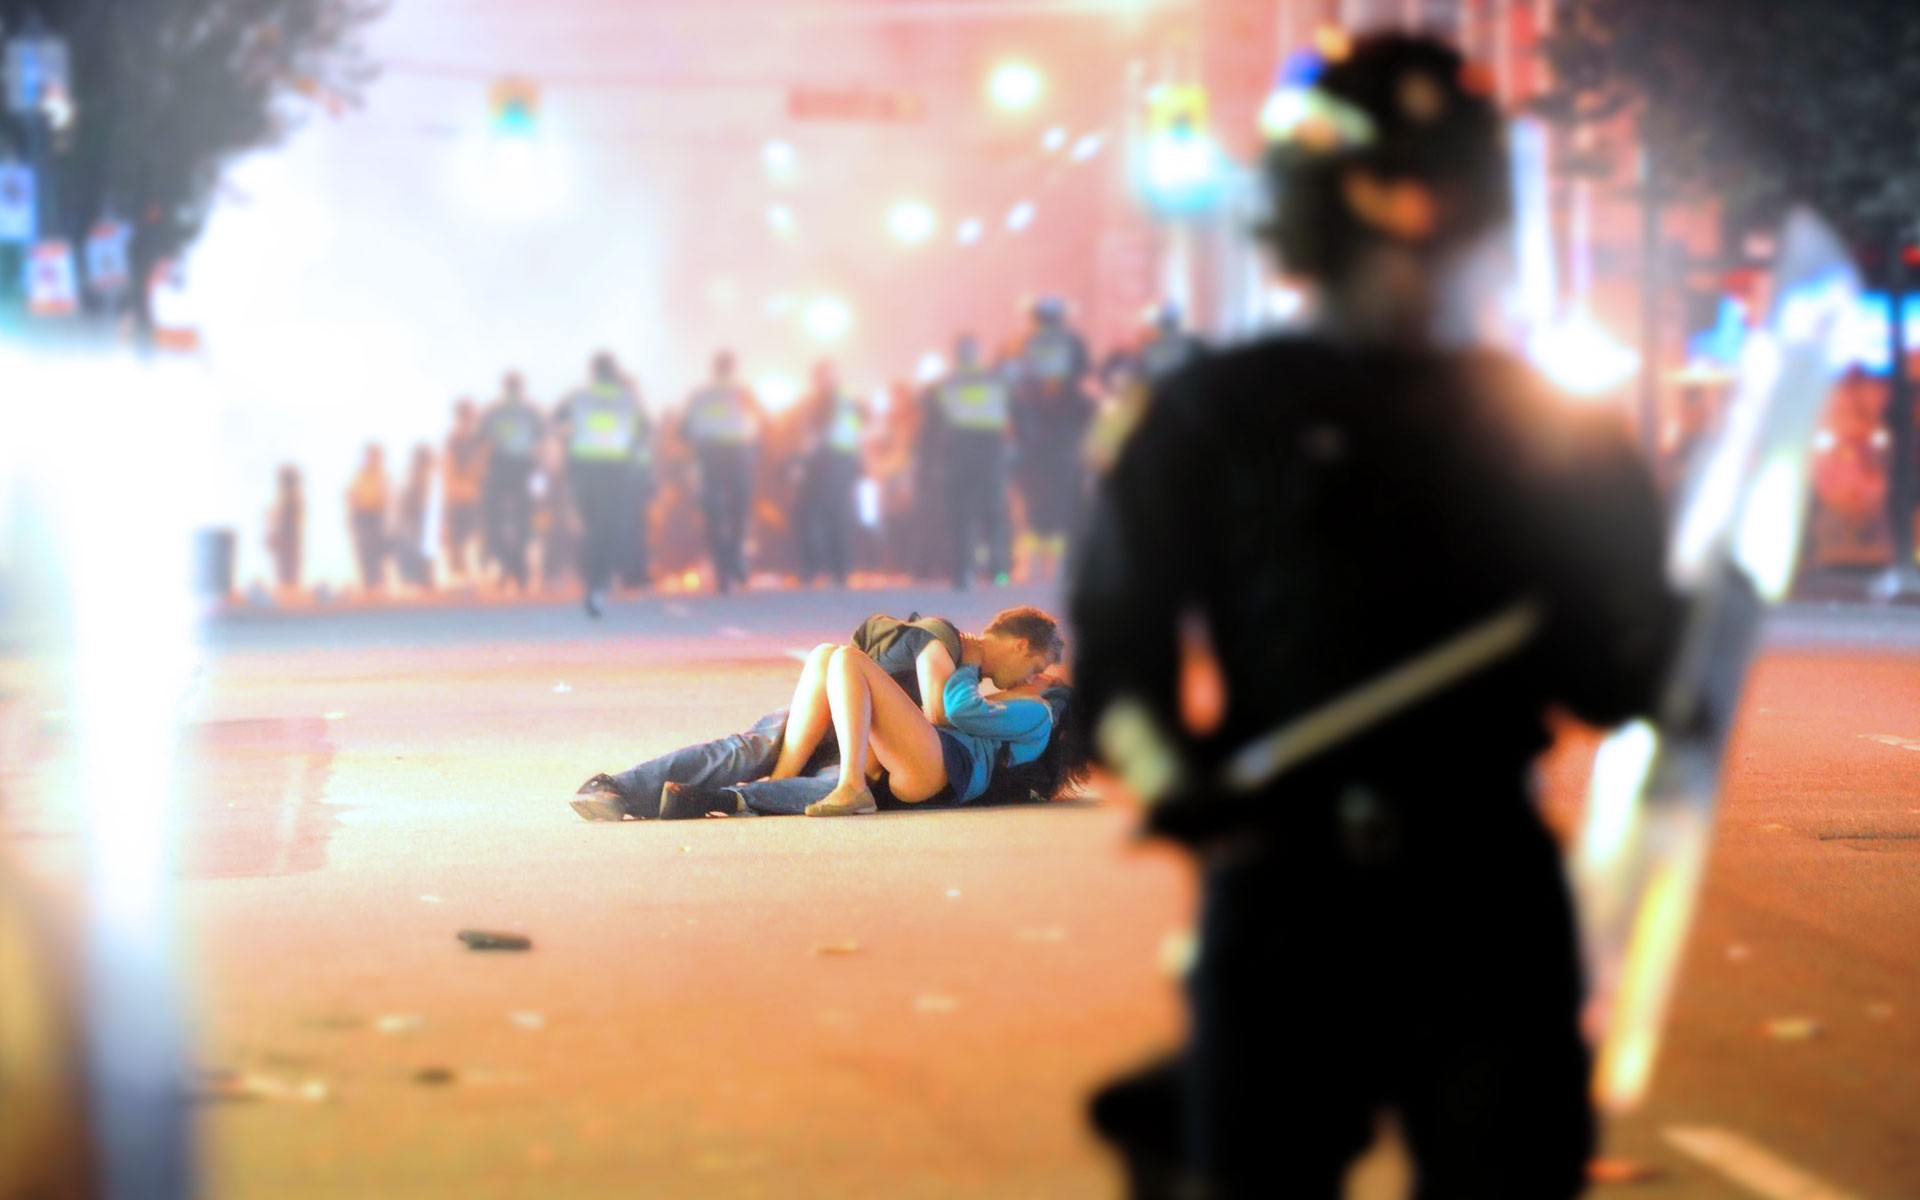 http://s3.picofile.com/file/8214219192/riot_kissing_w1.jpeg